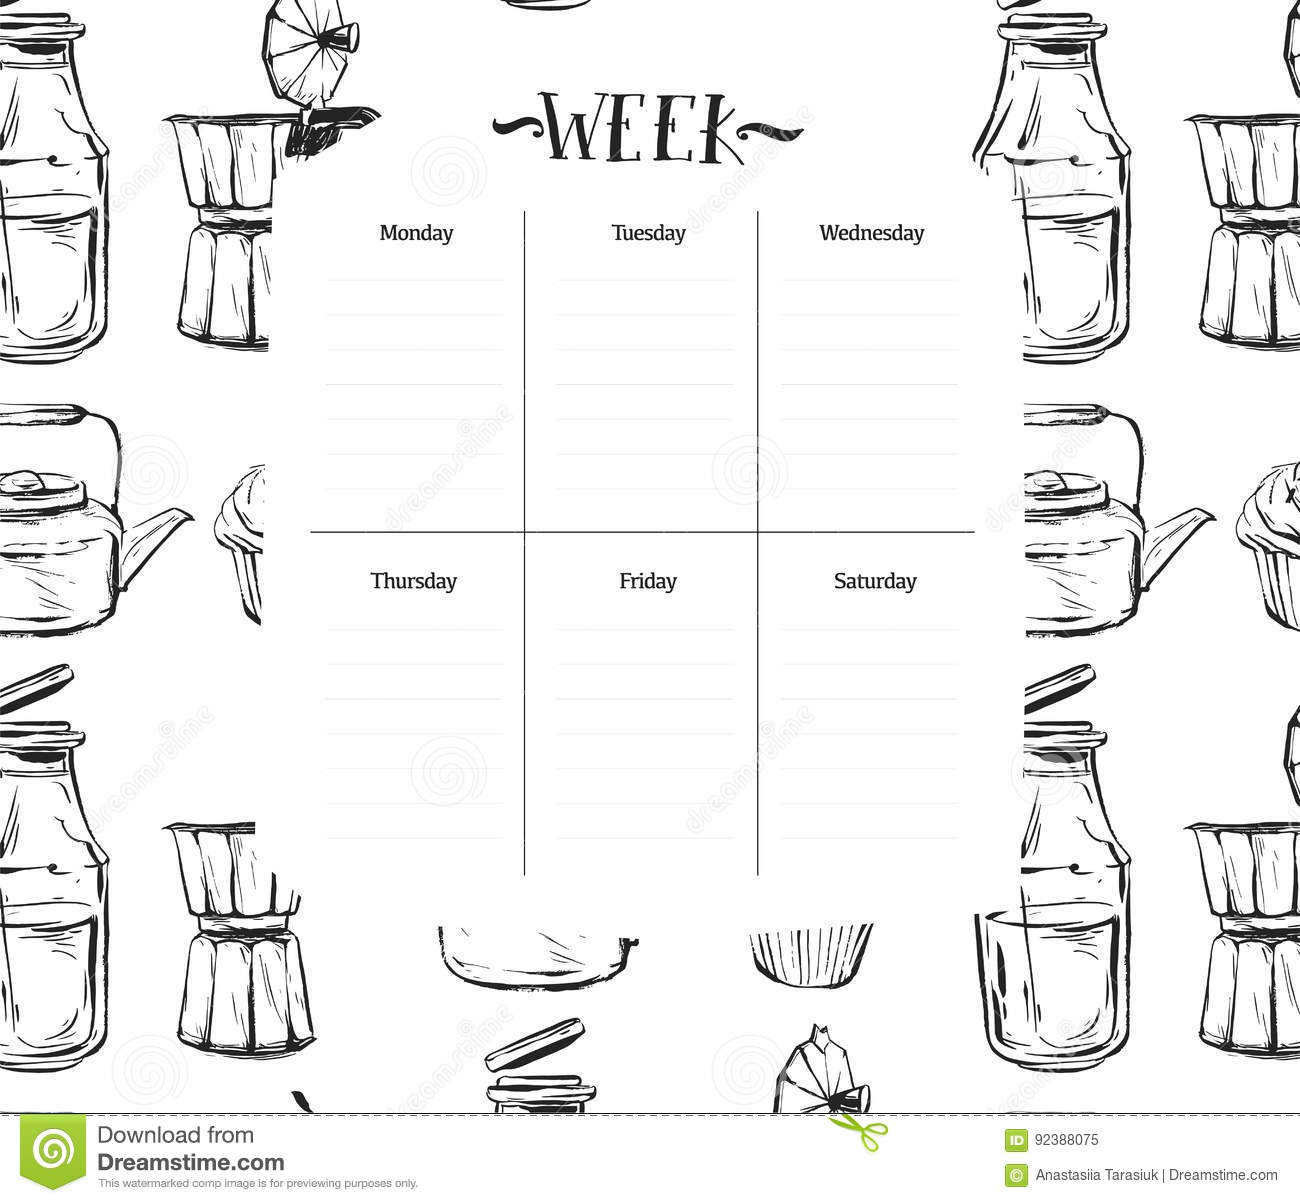 Scandinavian Weekly And Daily Food Planner Templateanizer And Schedule With Notes And To Do